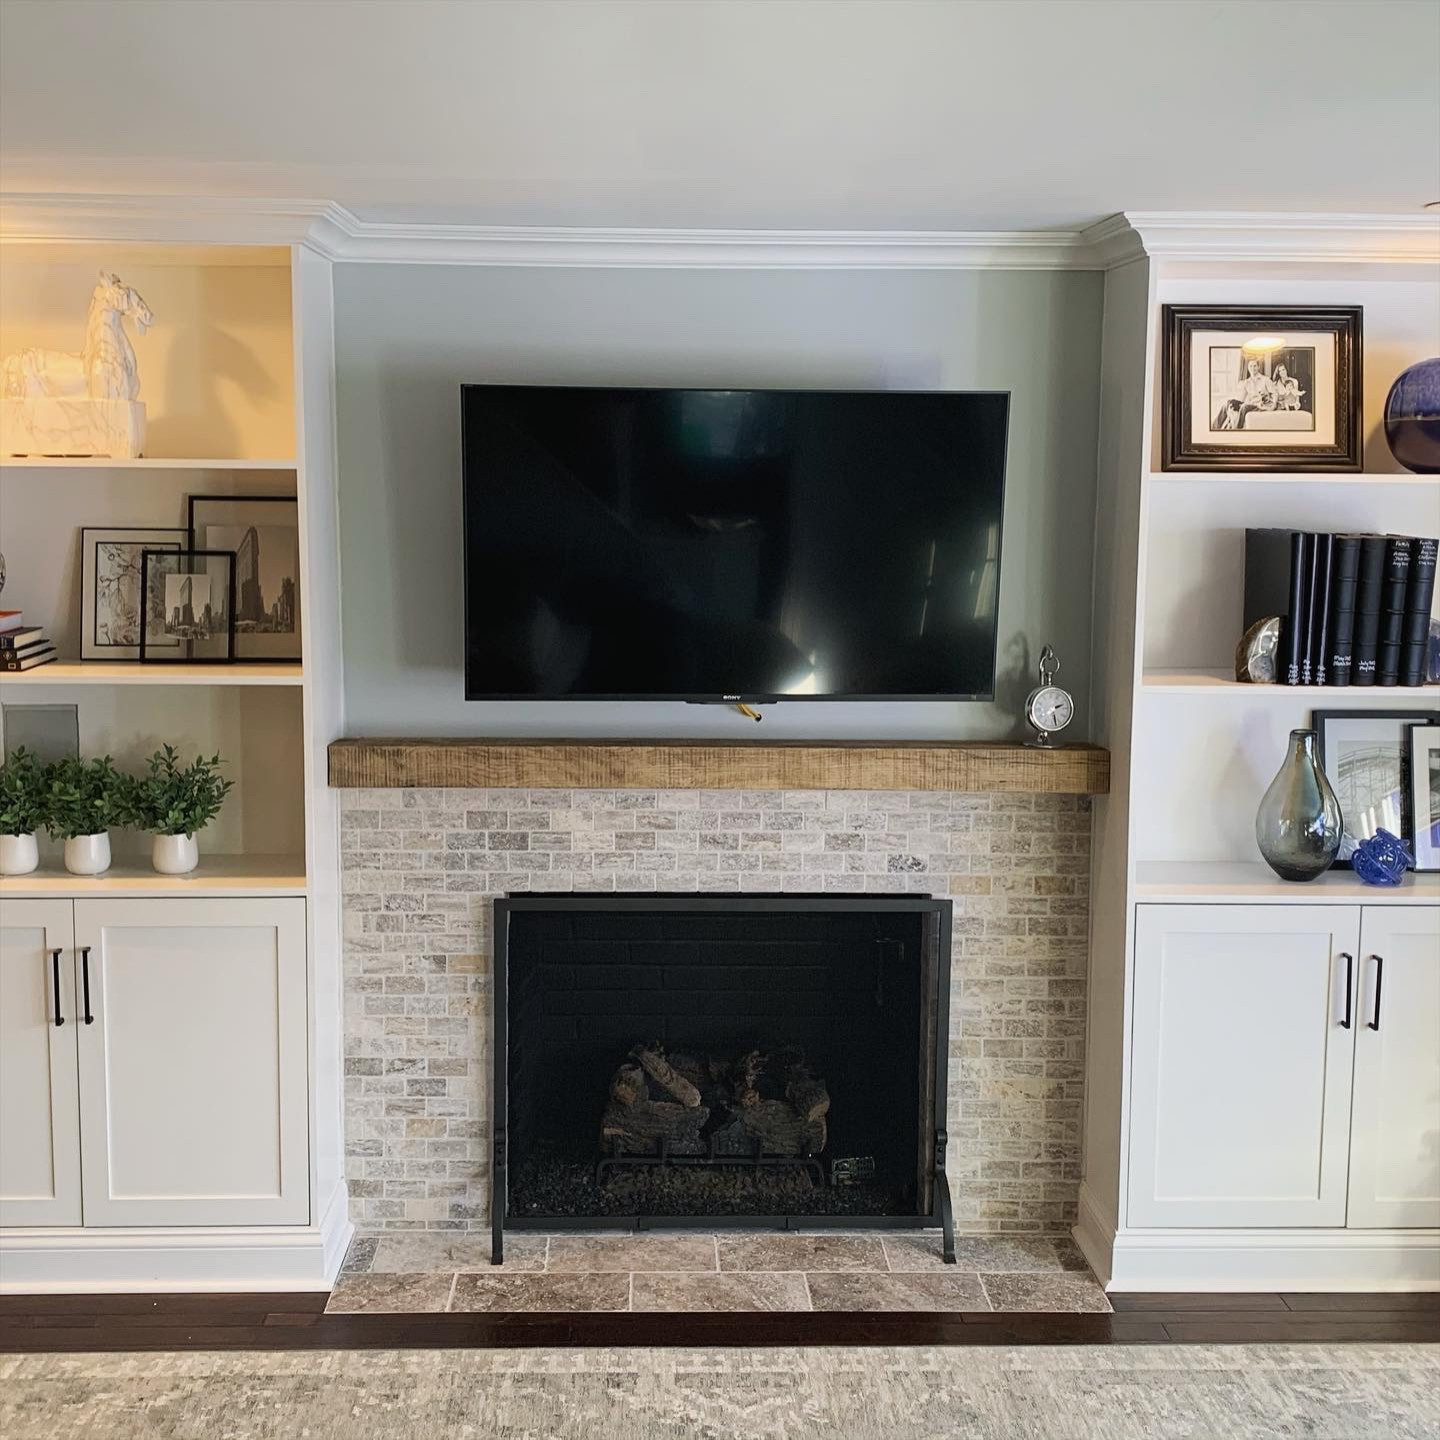 Custom built in bookcase/fireplace and hearth area